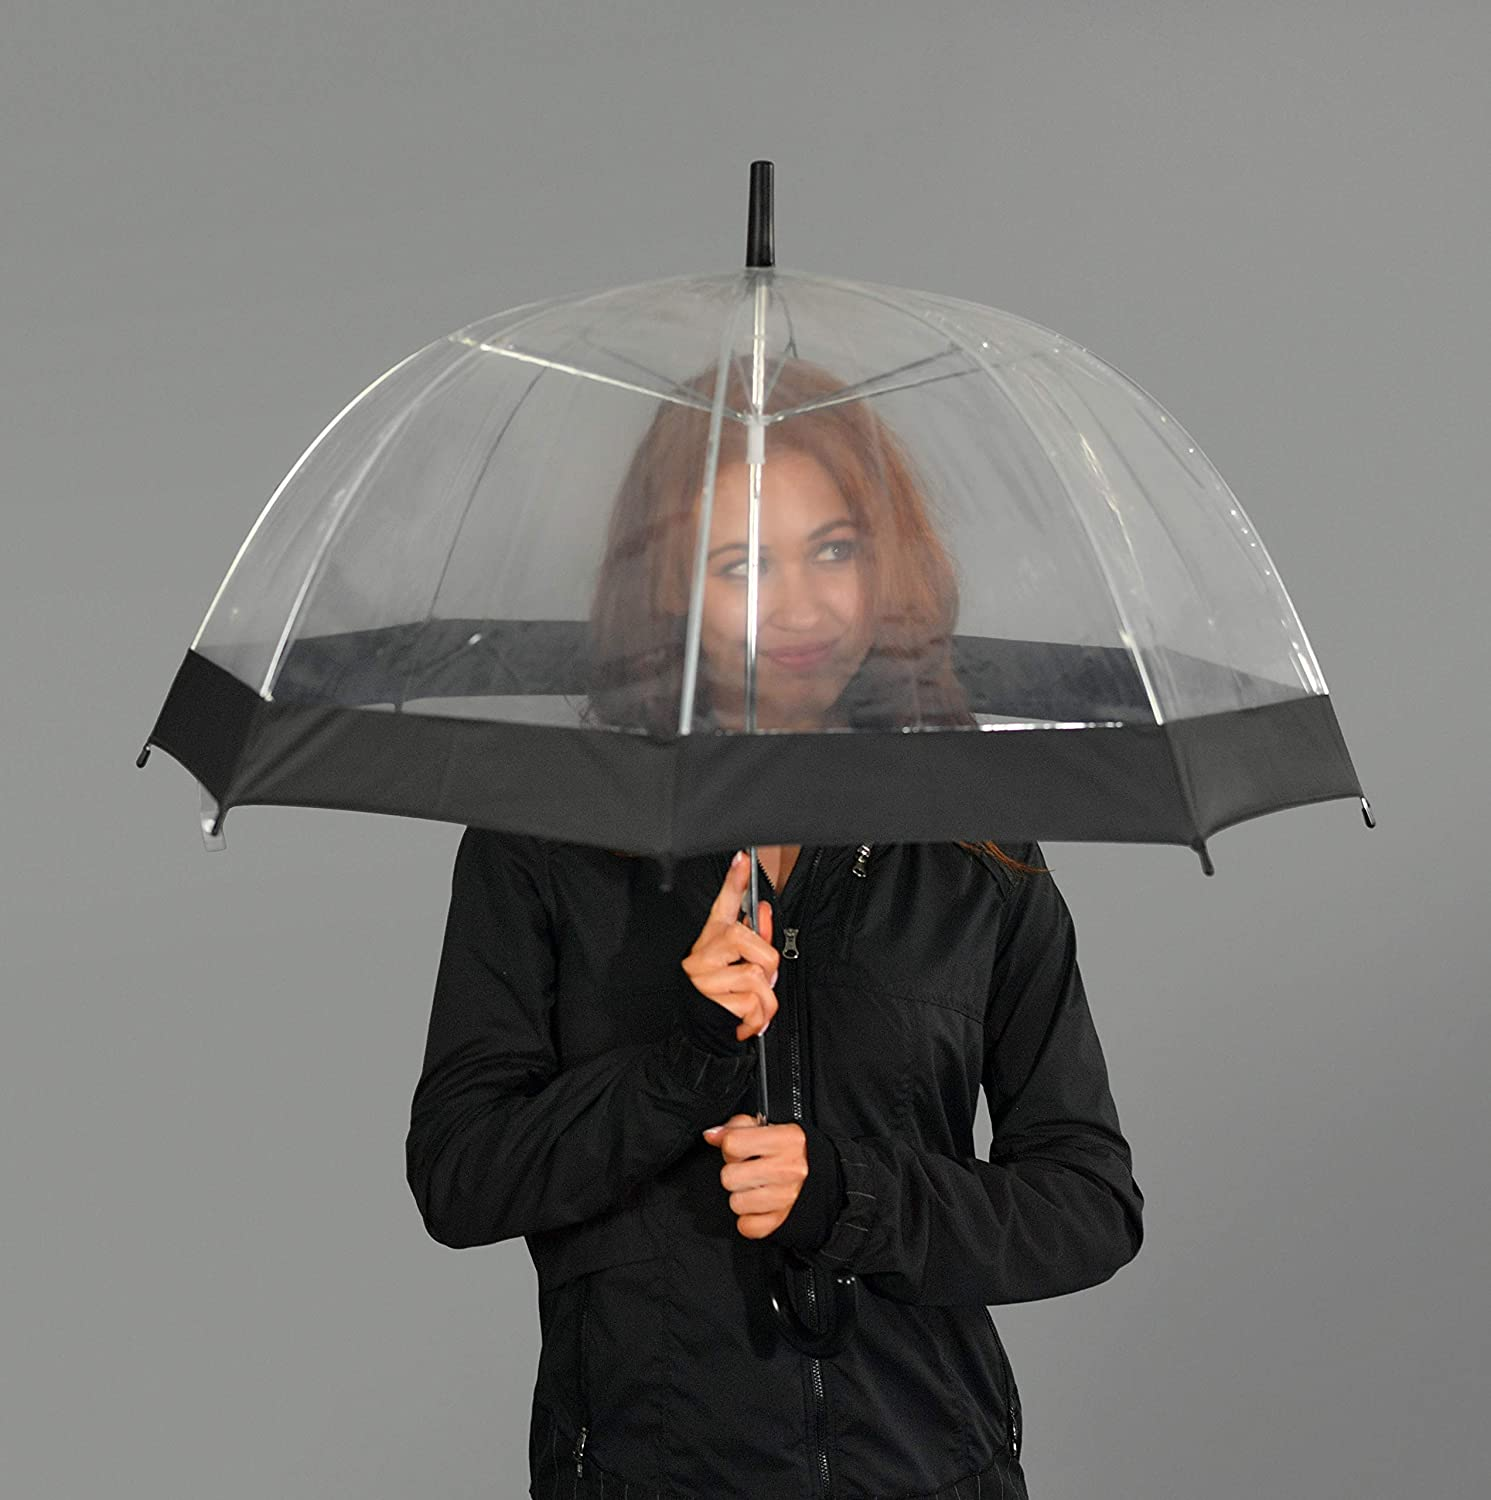 Durable Wind-Resistant Umbrella with Sturdy Bubble Design Incapable of Flipping Inside Out for Men and Women of All Ages Home-X Clear Bubble Umbrella with Black Trim